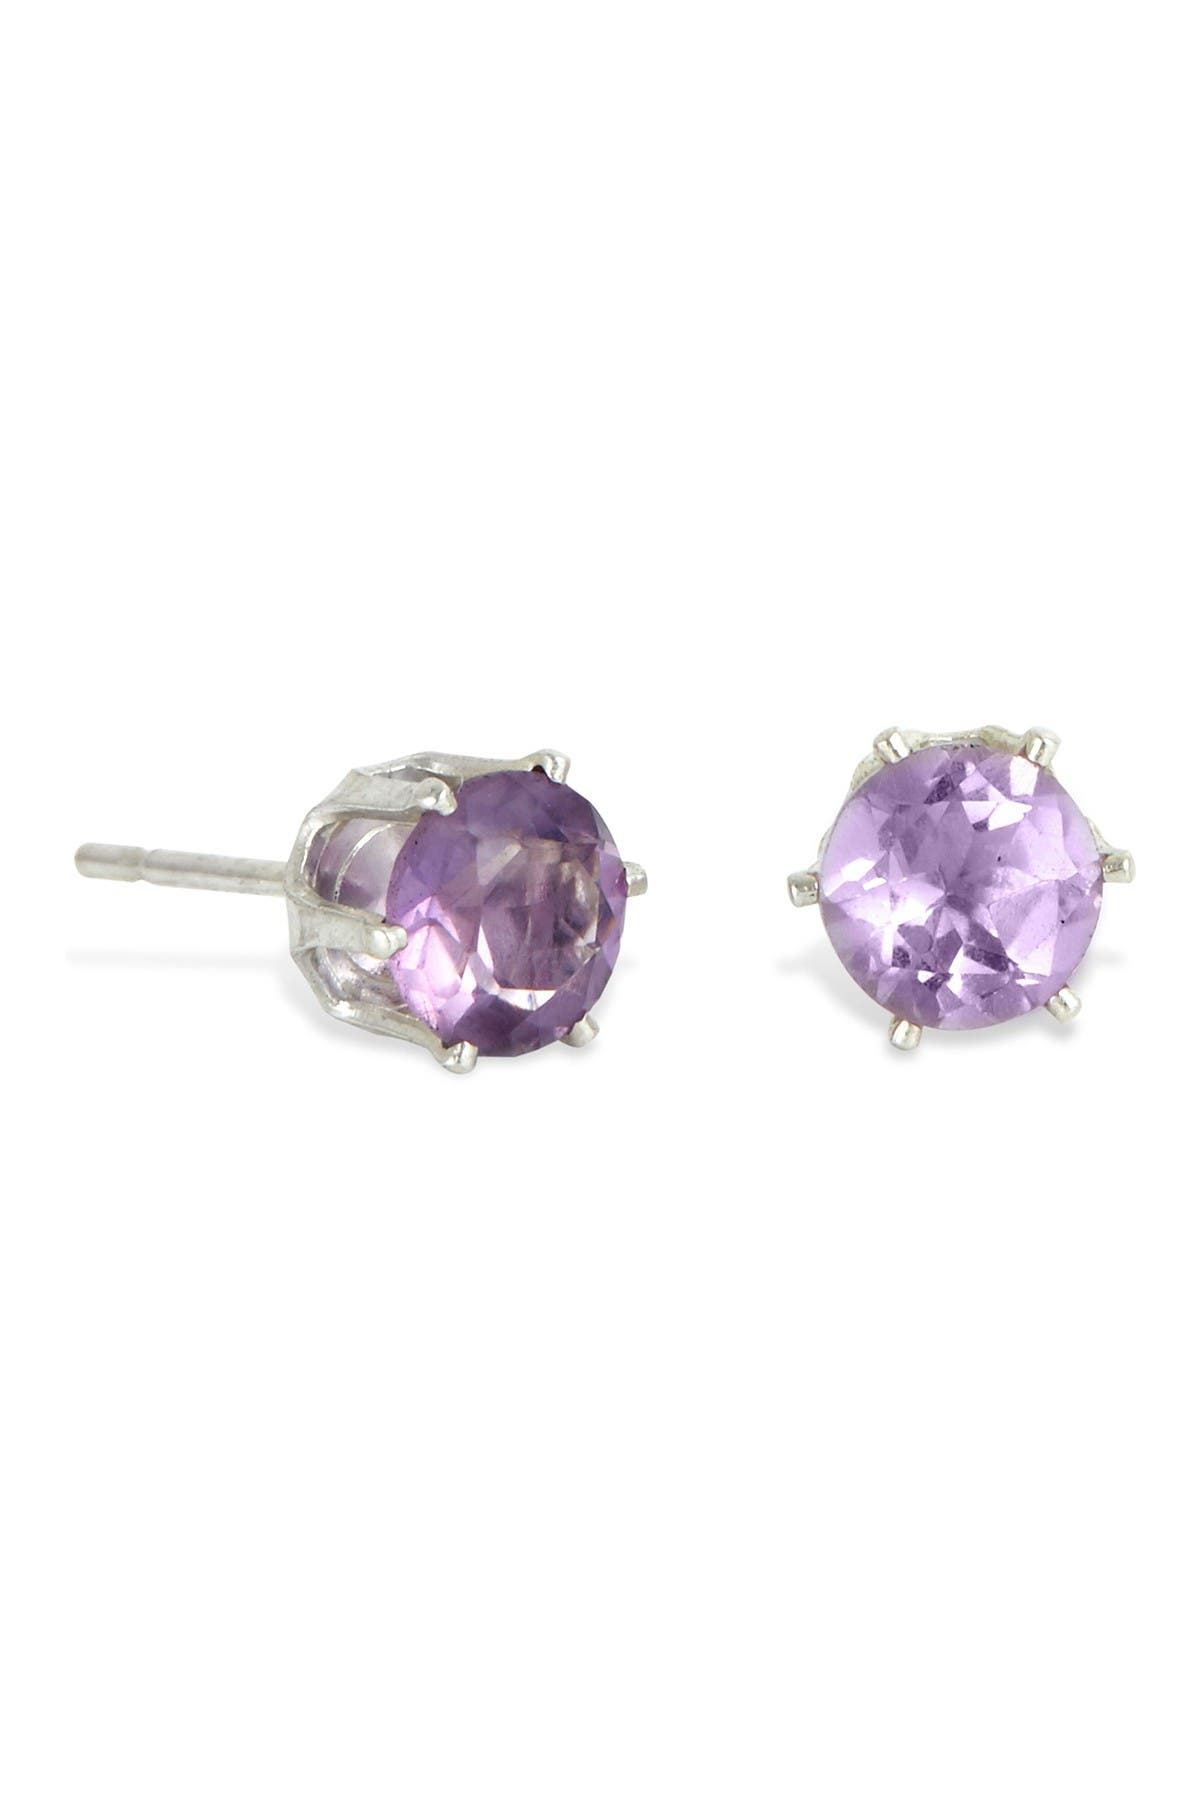 Image of Savvy Cie Sterling Silver Amethyst Stud Earrings